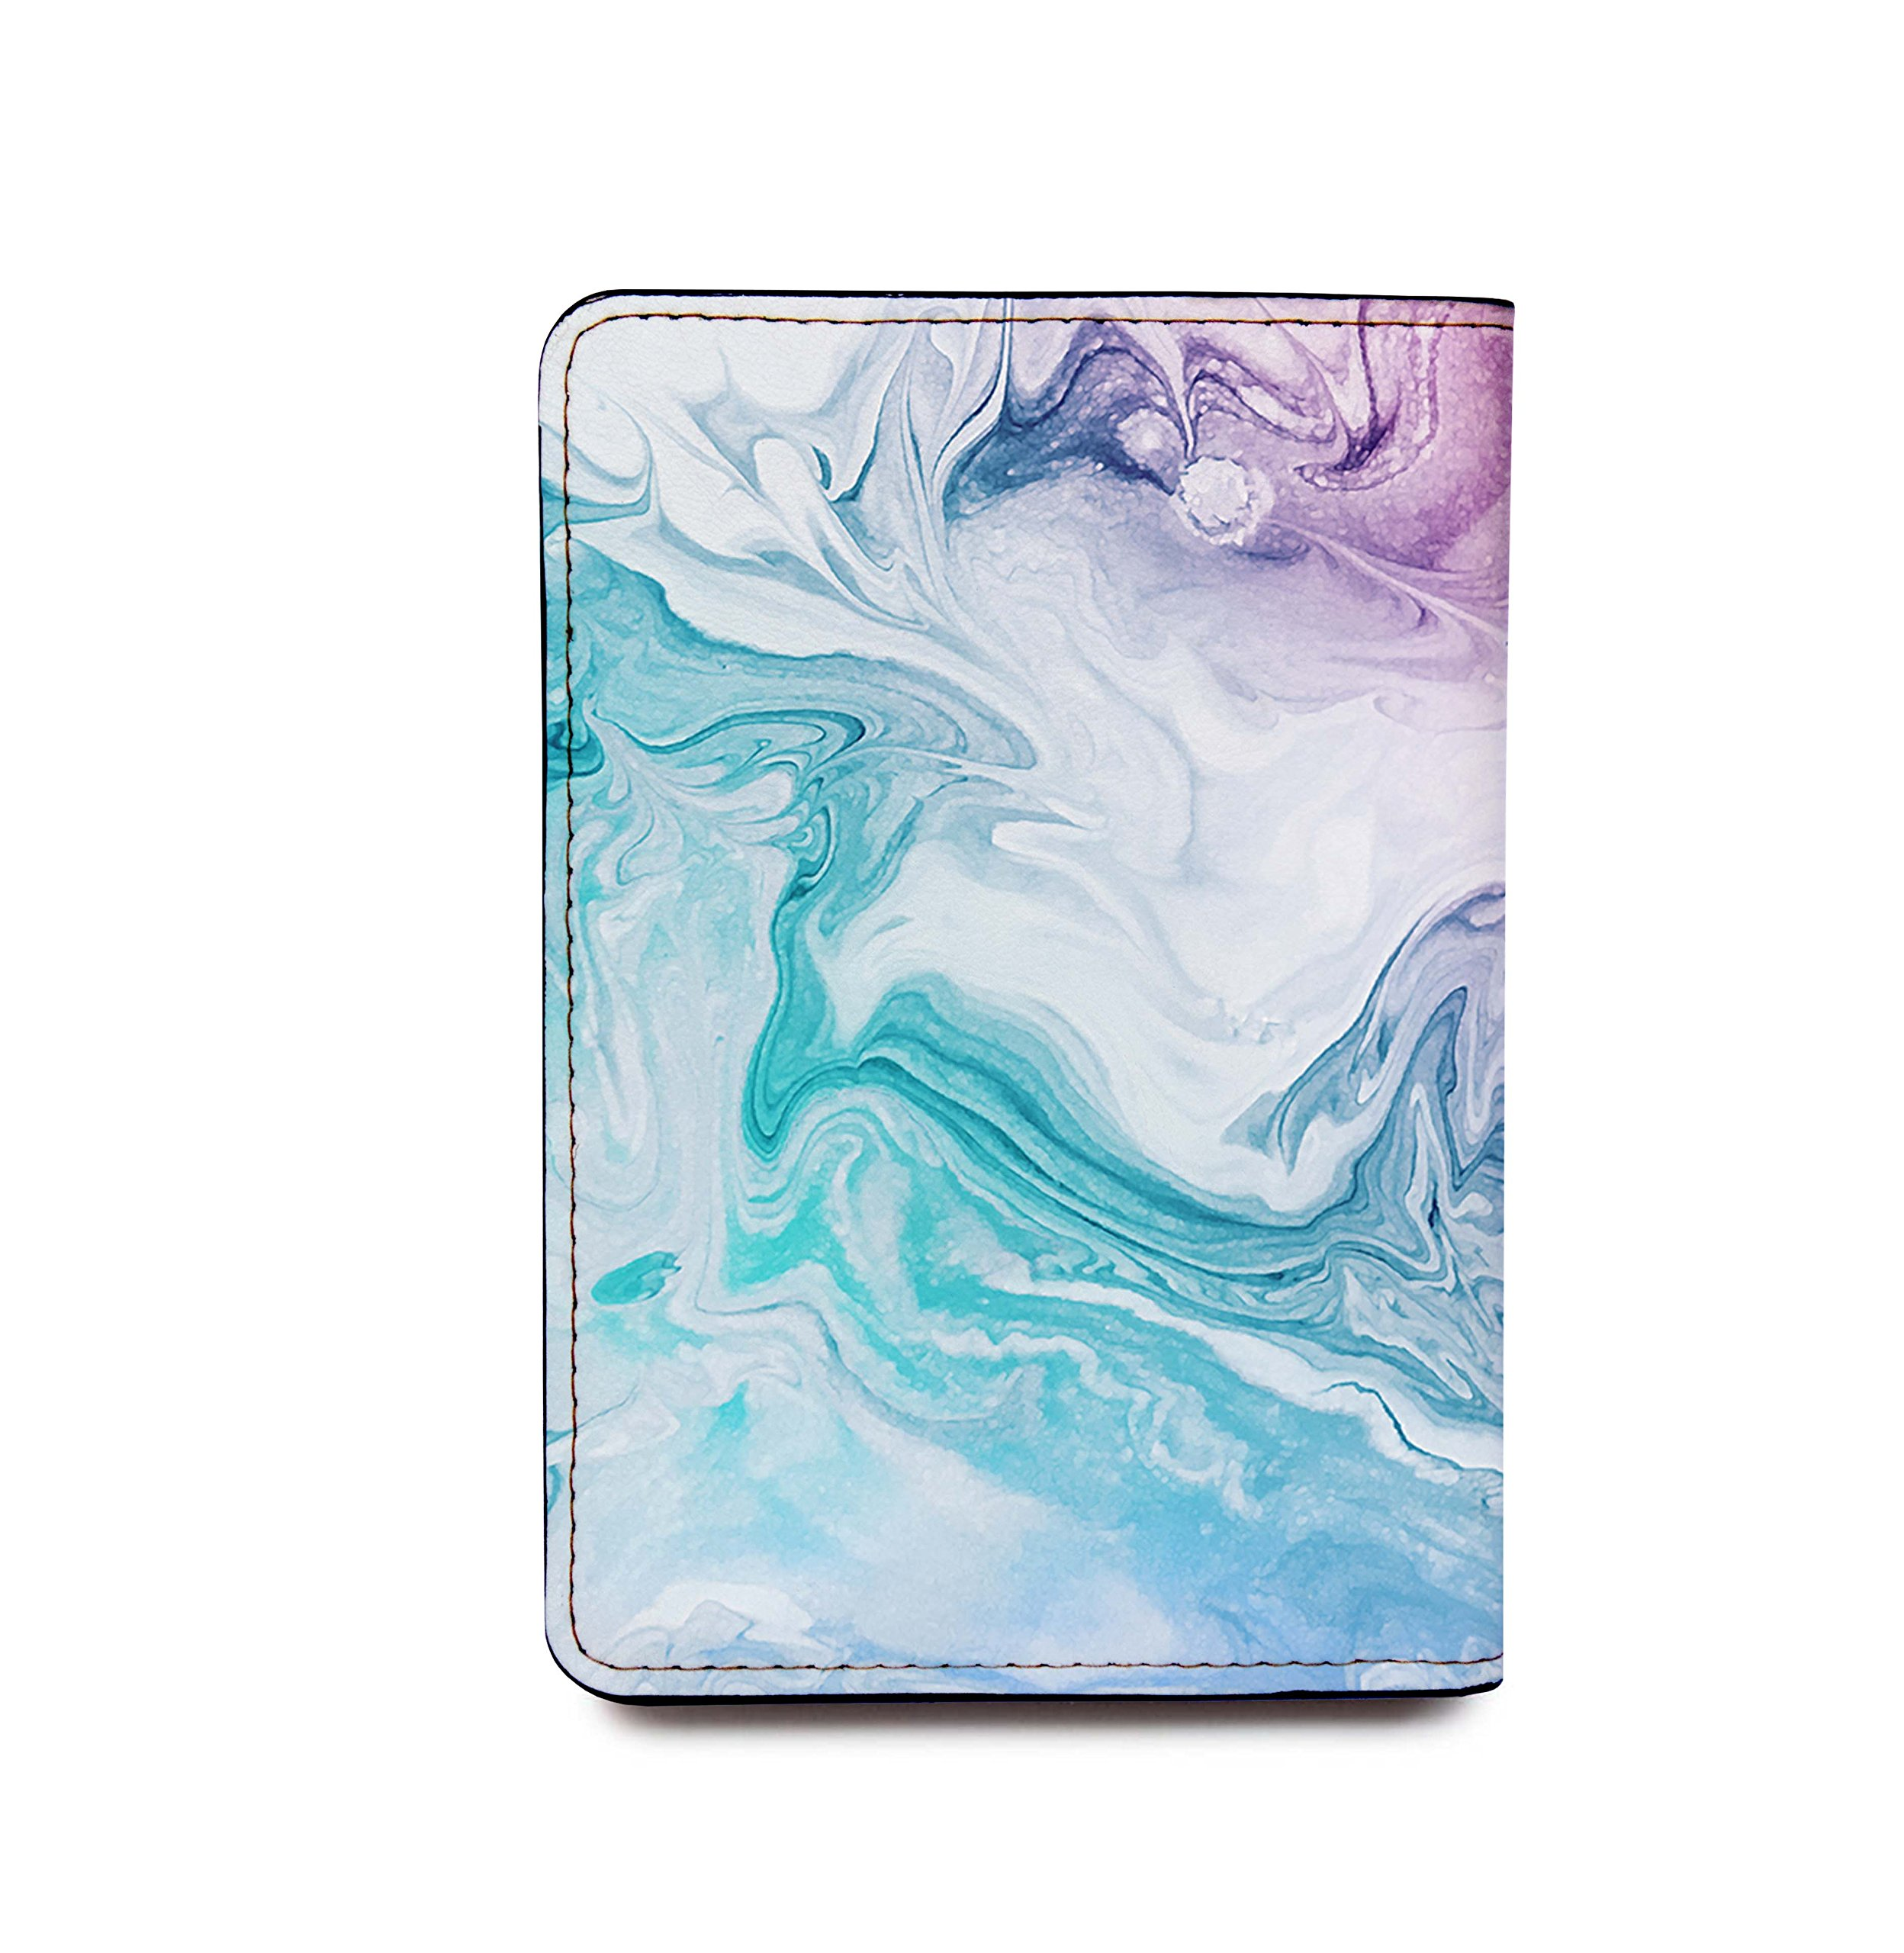 Personalized RFID Blocking Leather Passport Holder - Marble Passport Cover by With Love From Julie (Image #4)